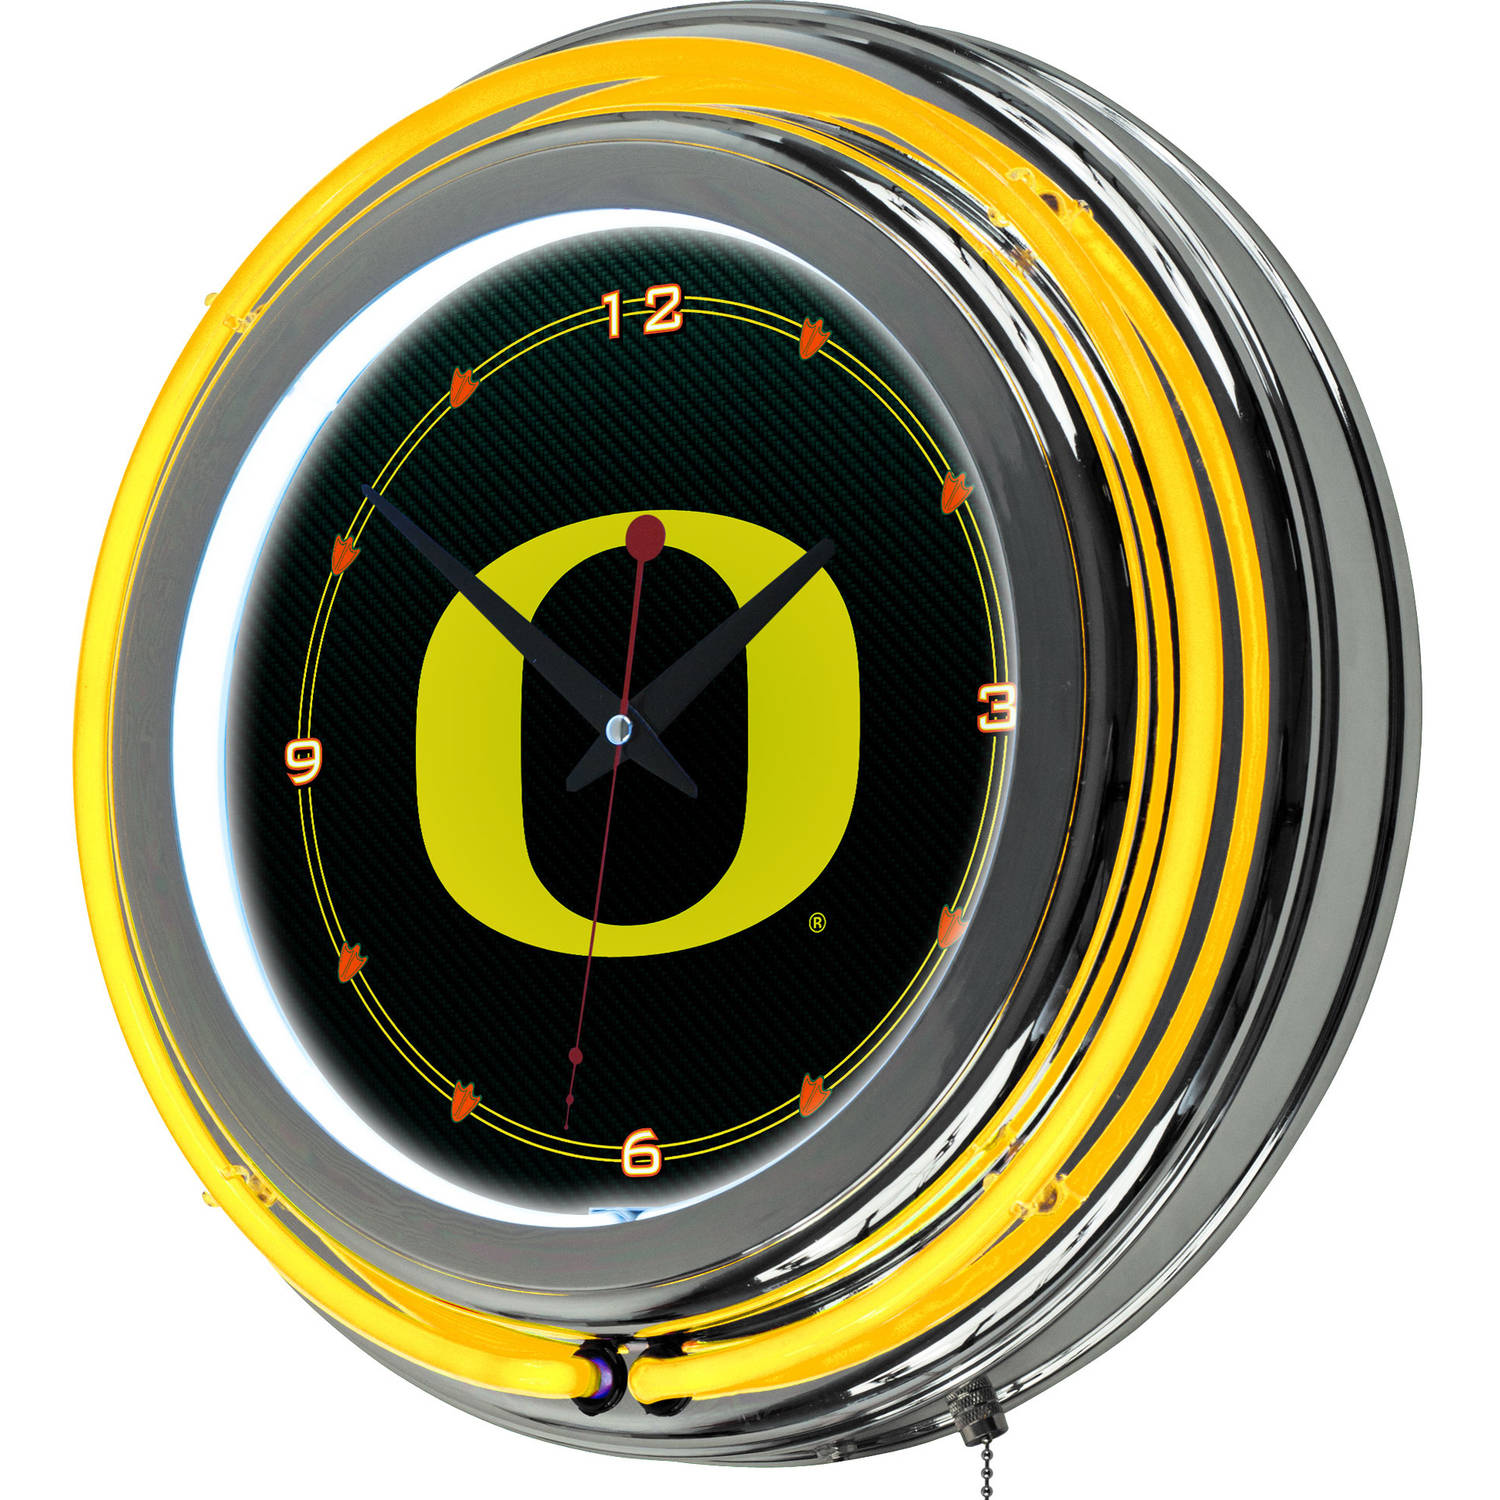 University of Oregon Chrome Double Rung Neon Clock, Carbon Fiber